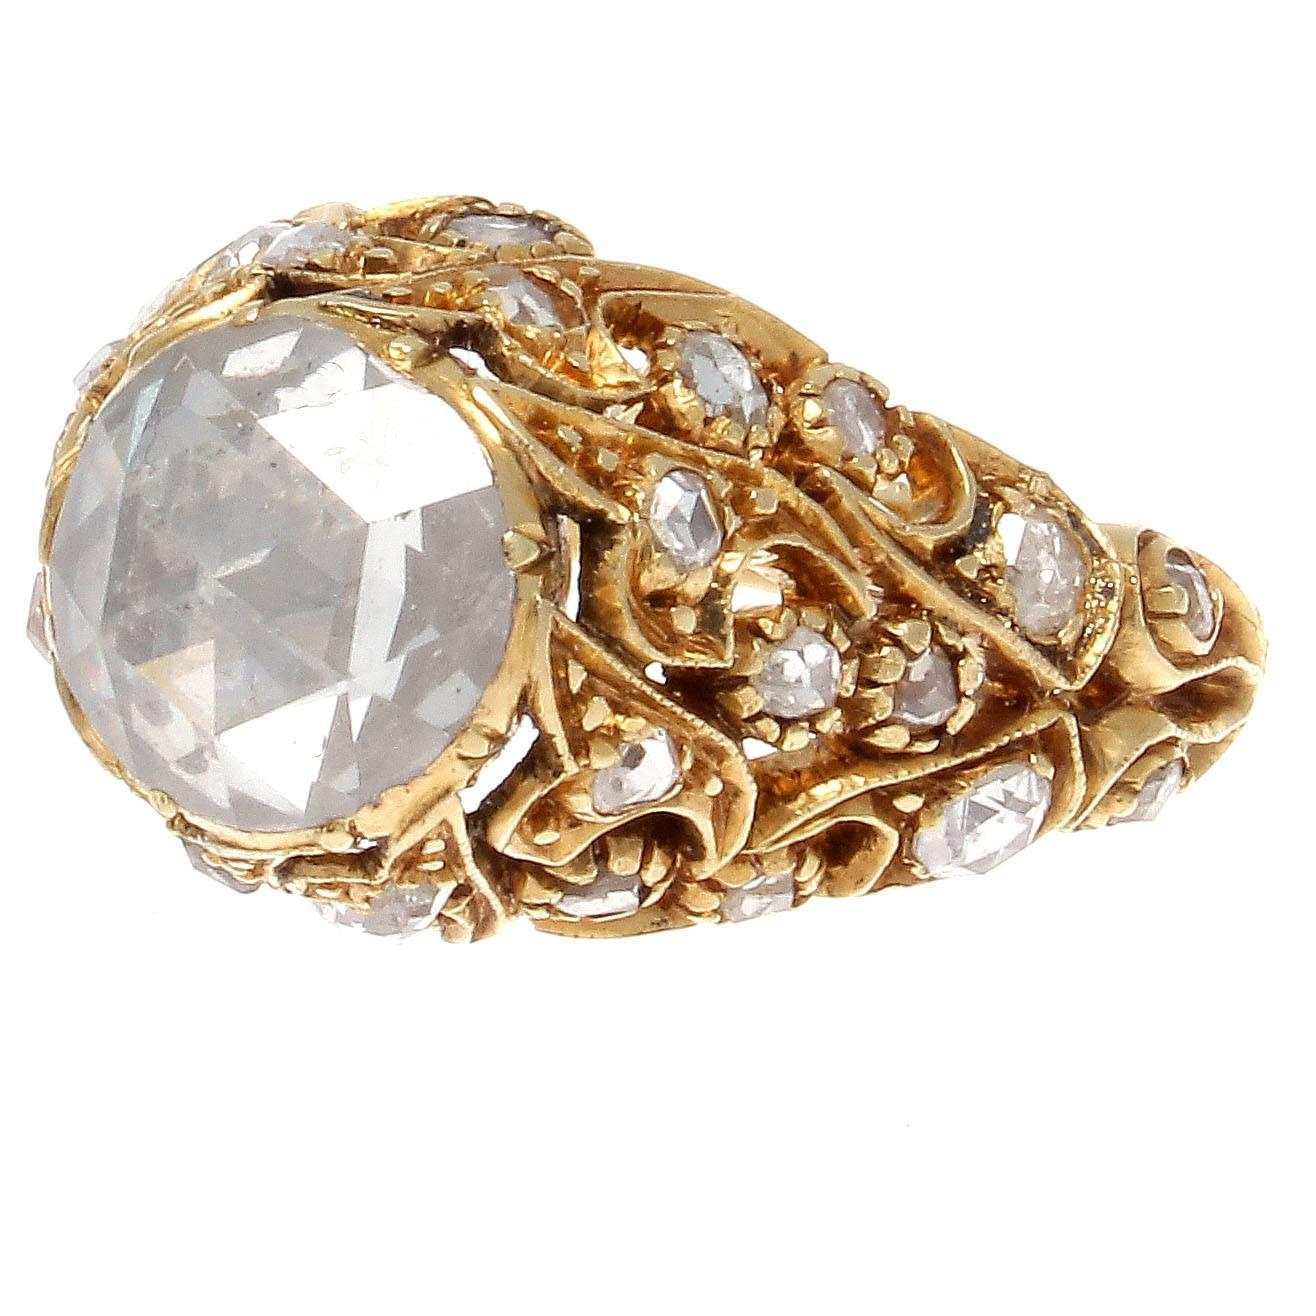 Turkish Rose Cut Diamond Gold Ring For Sale At 1stdibs